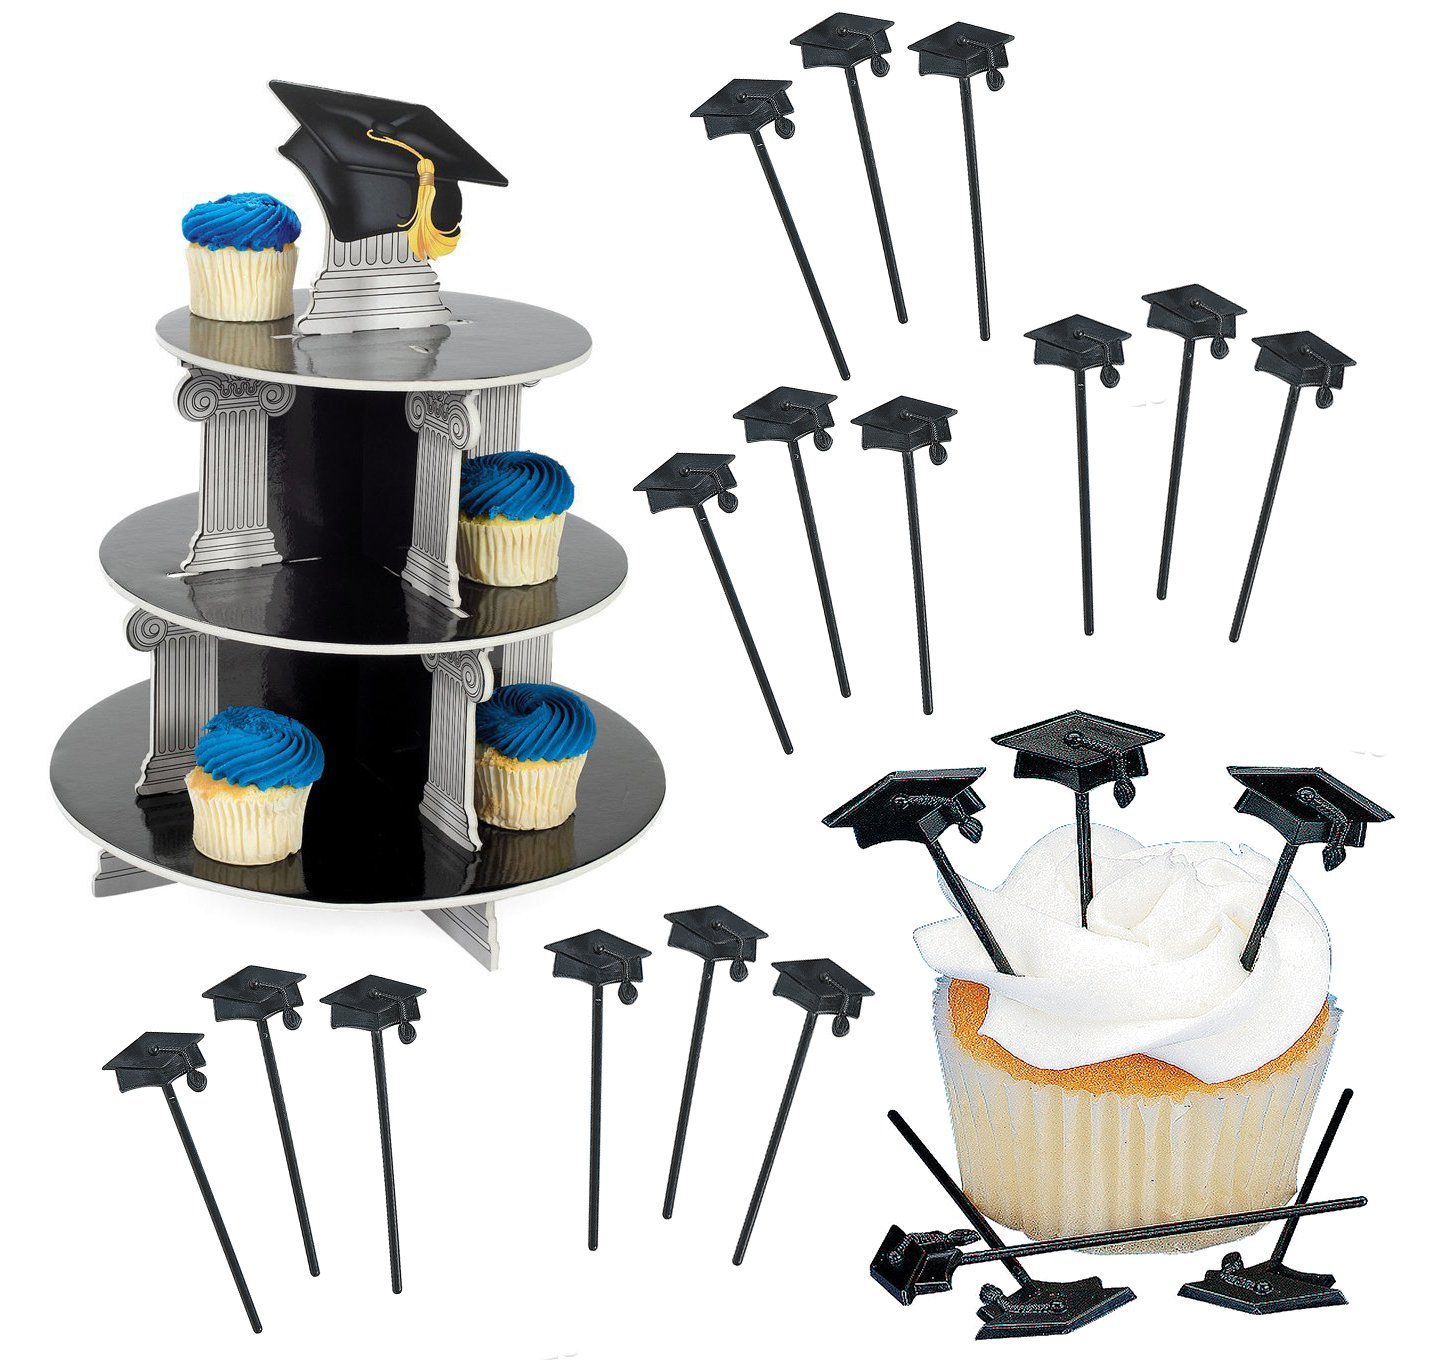 Graduation Cupcake Toppers and Stand, 72 Cupcake Picks, 1 Cupcake Holder